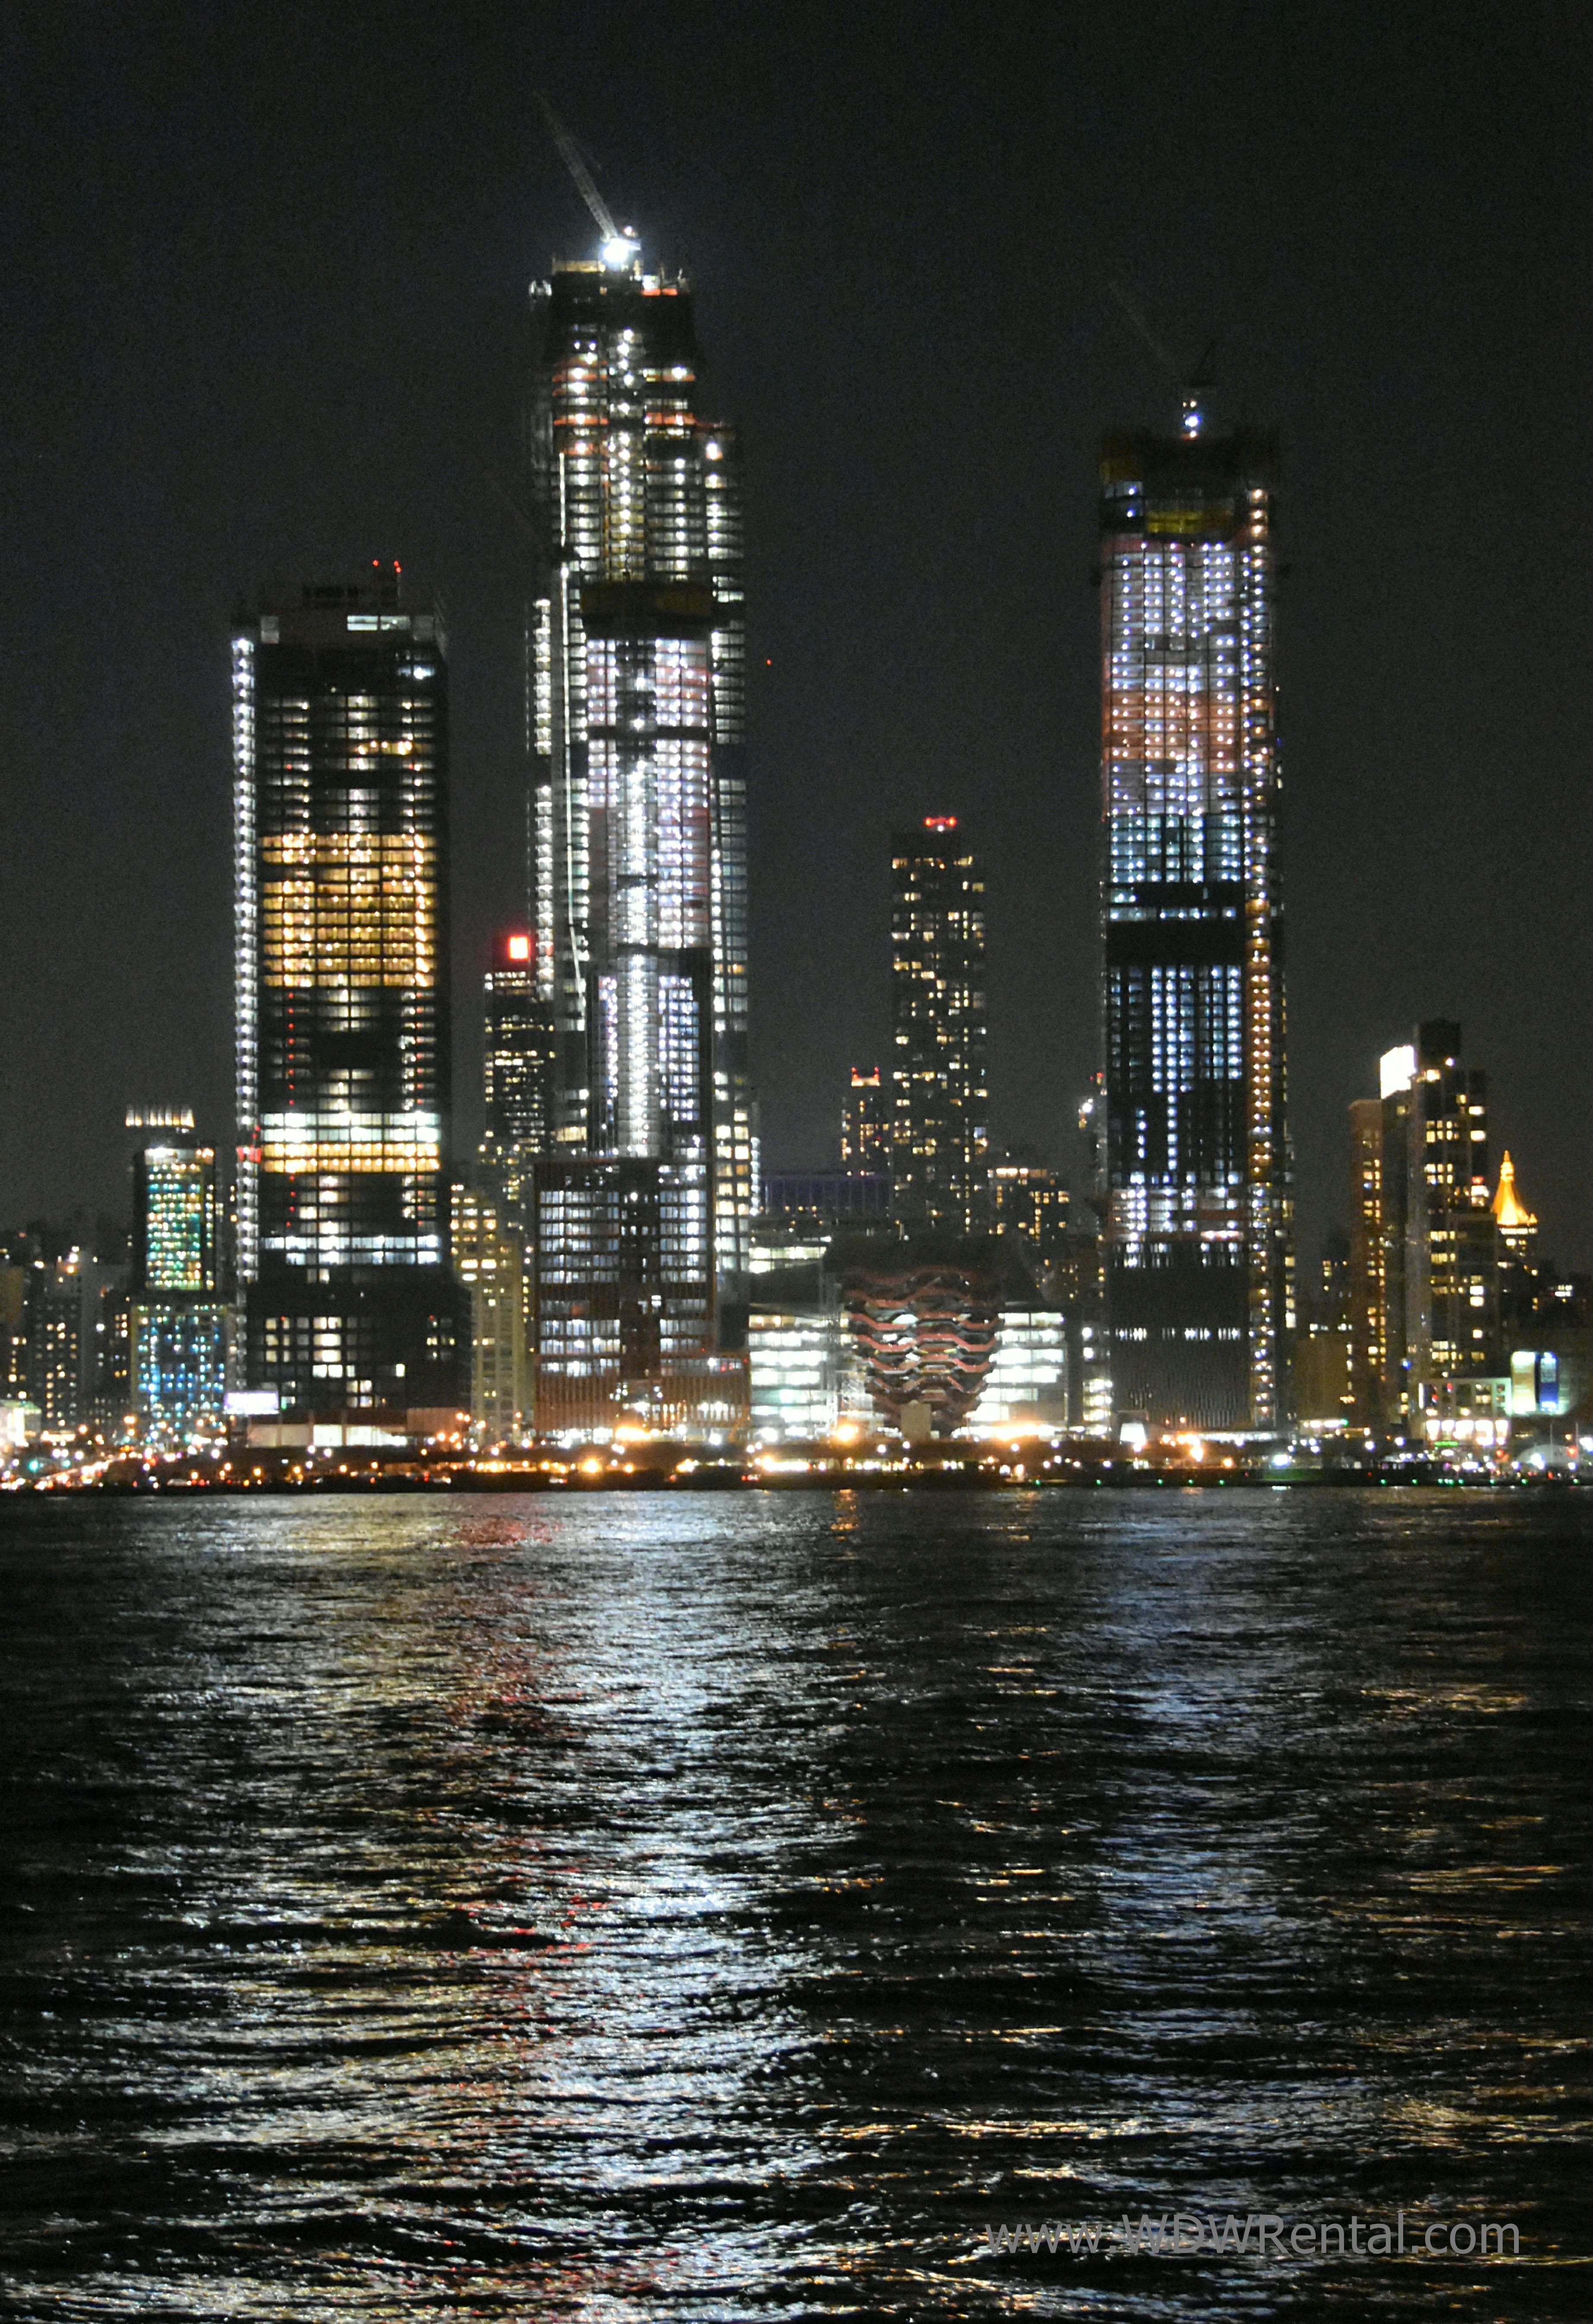 New York Ny City Skyline At Night As Taken From The Chart House Restaurant In Weehawken Nj - Vorhang New York Skyline